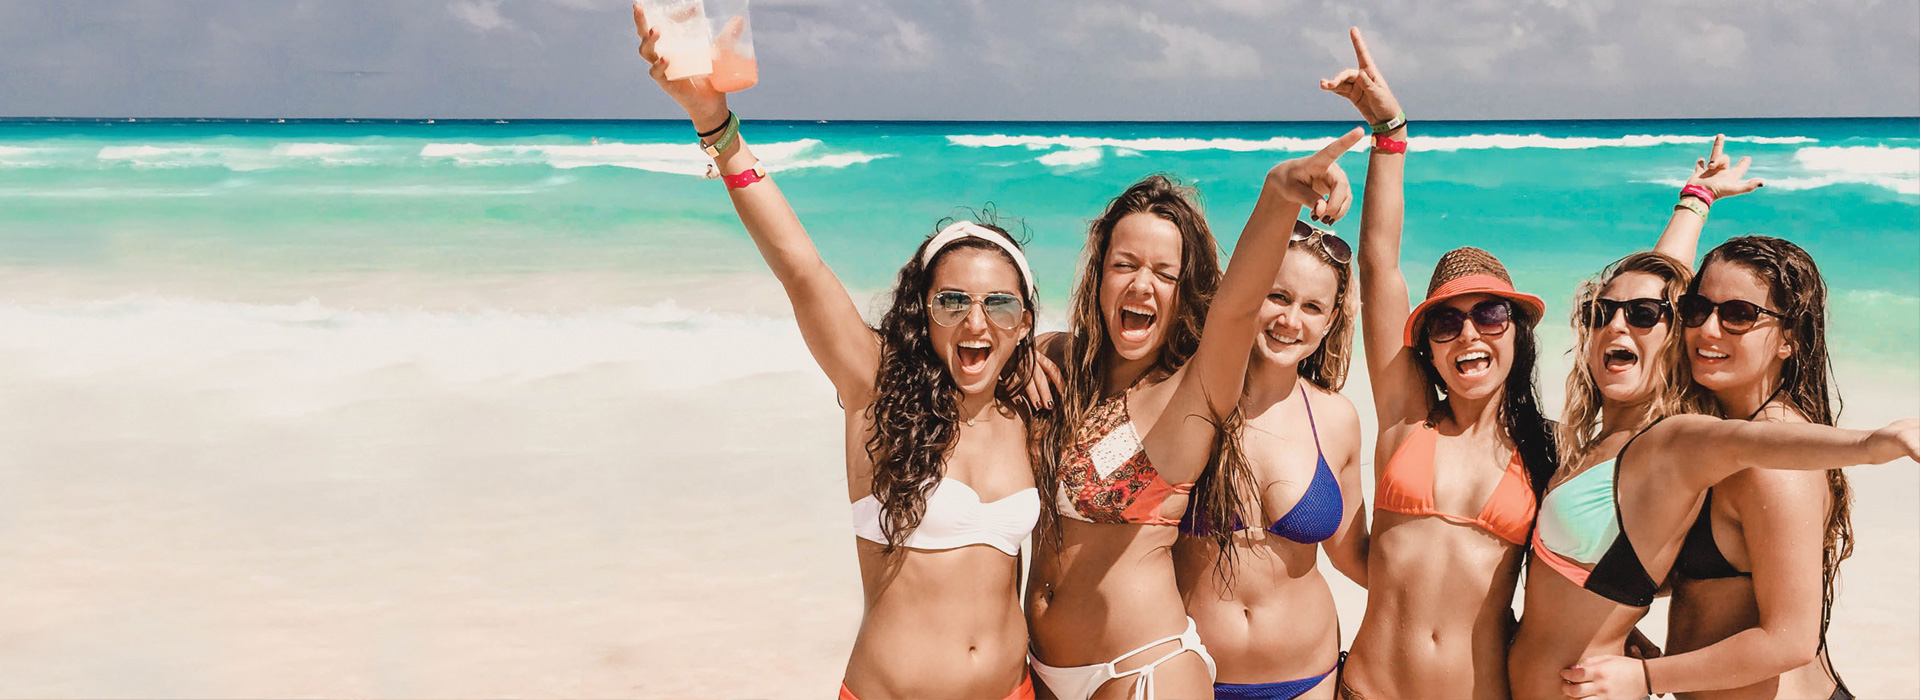 Your Guide To Spring Break In Central Florida within Lake County Florida Spring Break